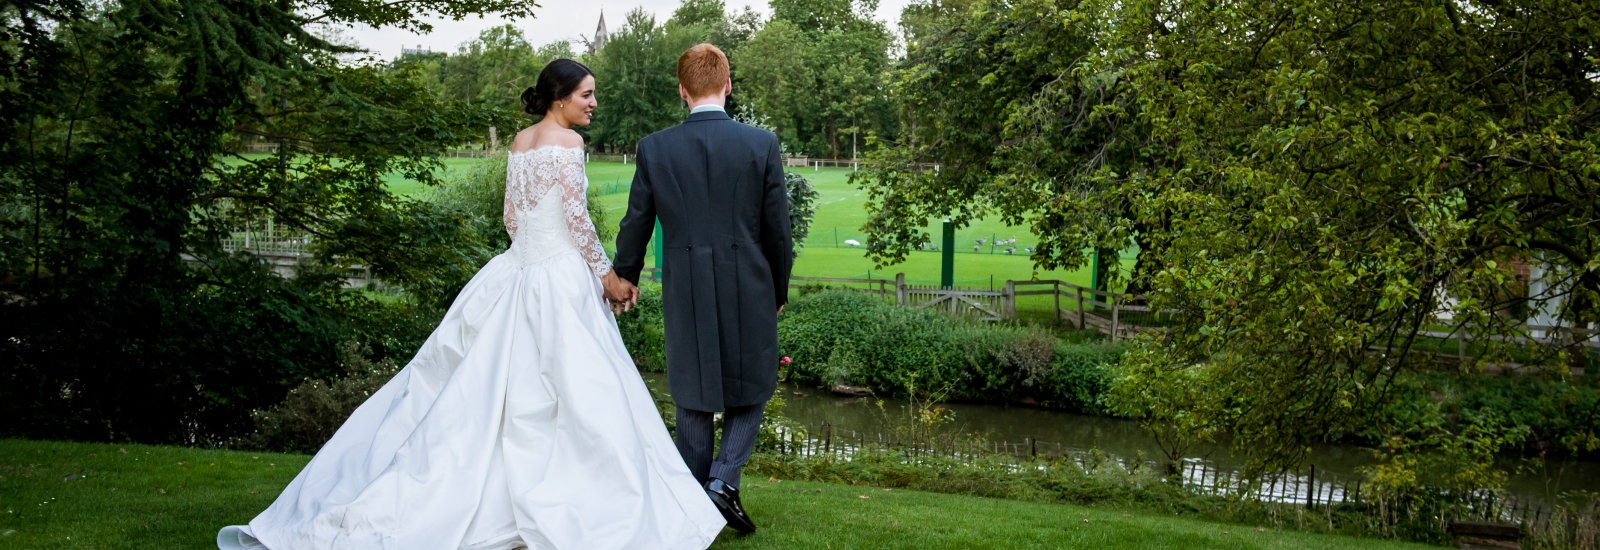 Bride and Groom in St Hilda's College grounds